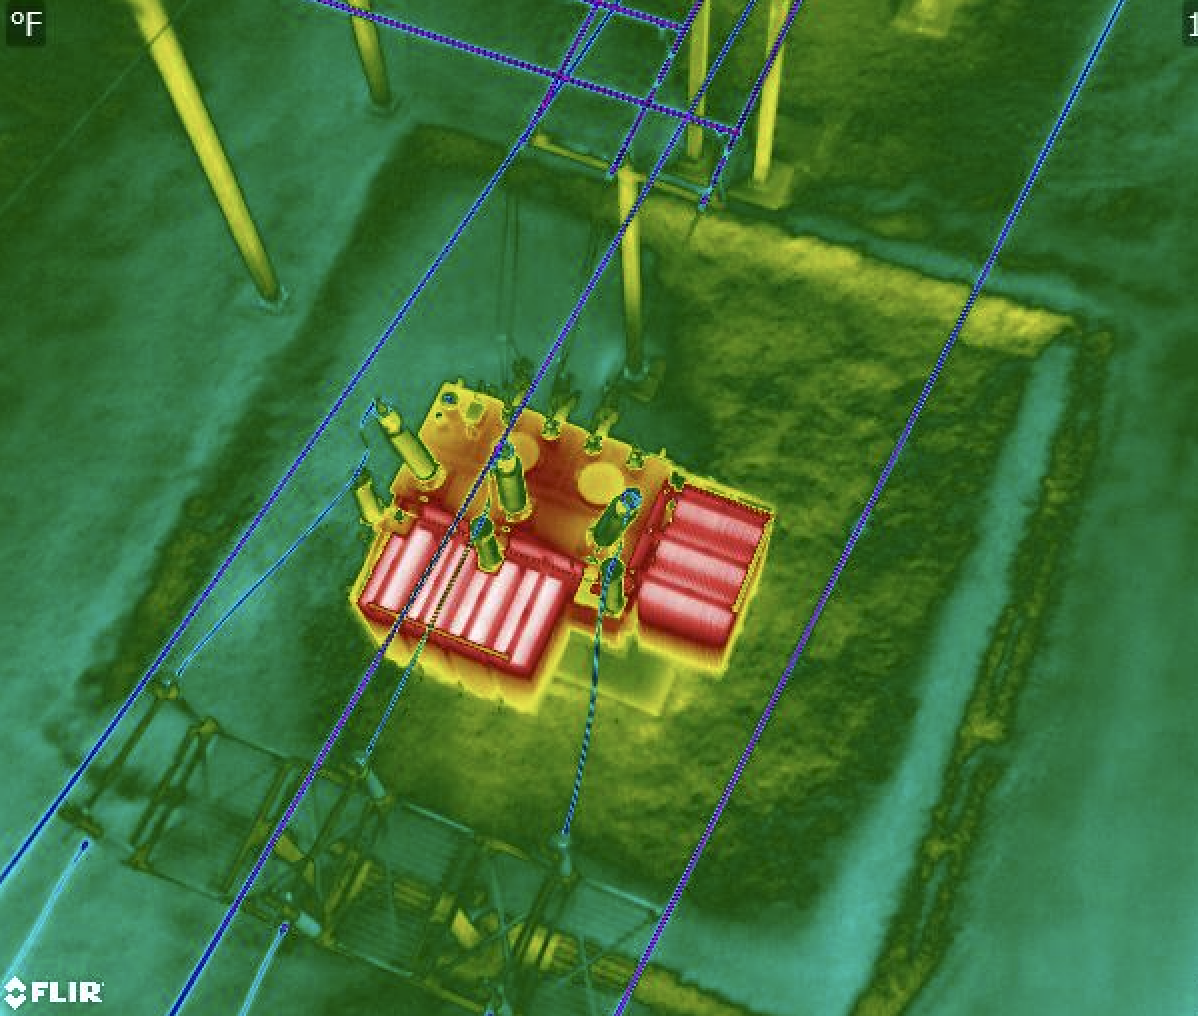 Infrastructure Inspections - - Aerial video and photo inspection data- Aerial thermal (radiometric) inspection data- Data delivery options includes (PLI) Power Line Inspector software integration for seamless assessment and crew deployment